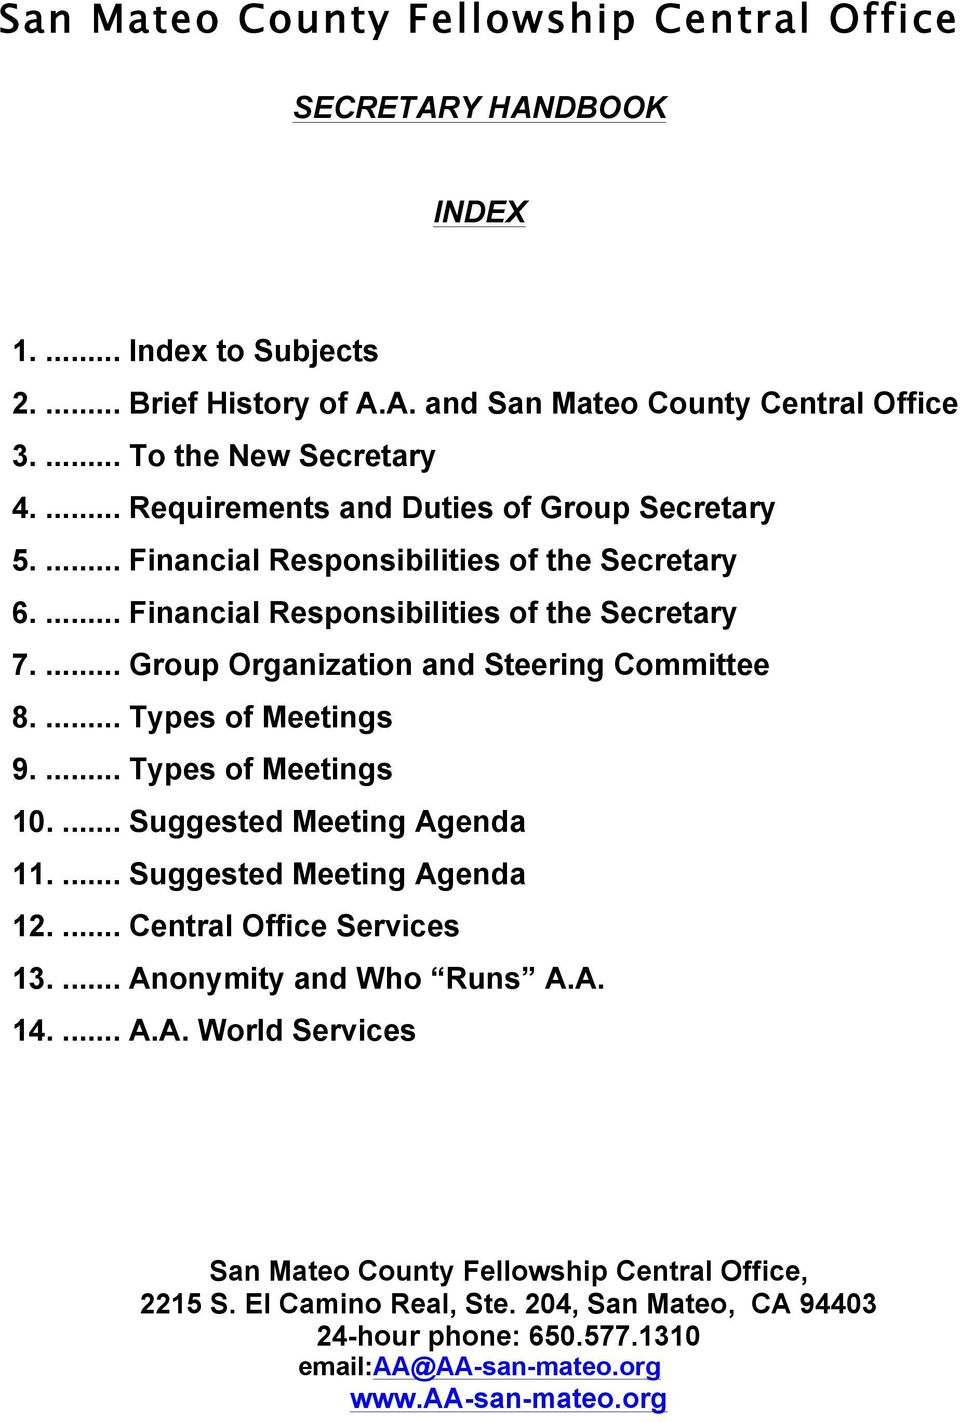 ... Group Organization and Steering Committee 8.... Types of Meetings 9.... Types of Meetings 10.... Suggested Meeting Agenda 11.... Suggested Meeting Agenda 12.... Central Office Services 13.